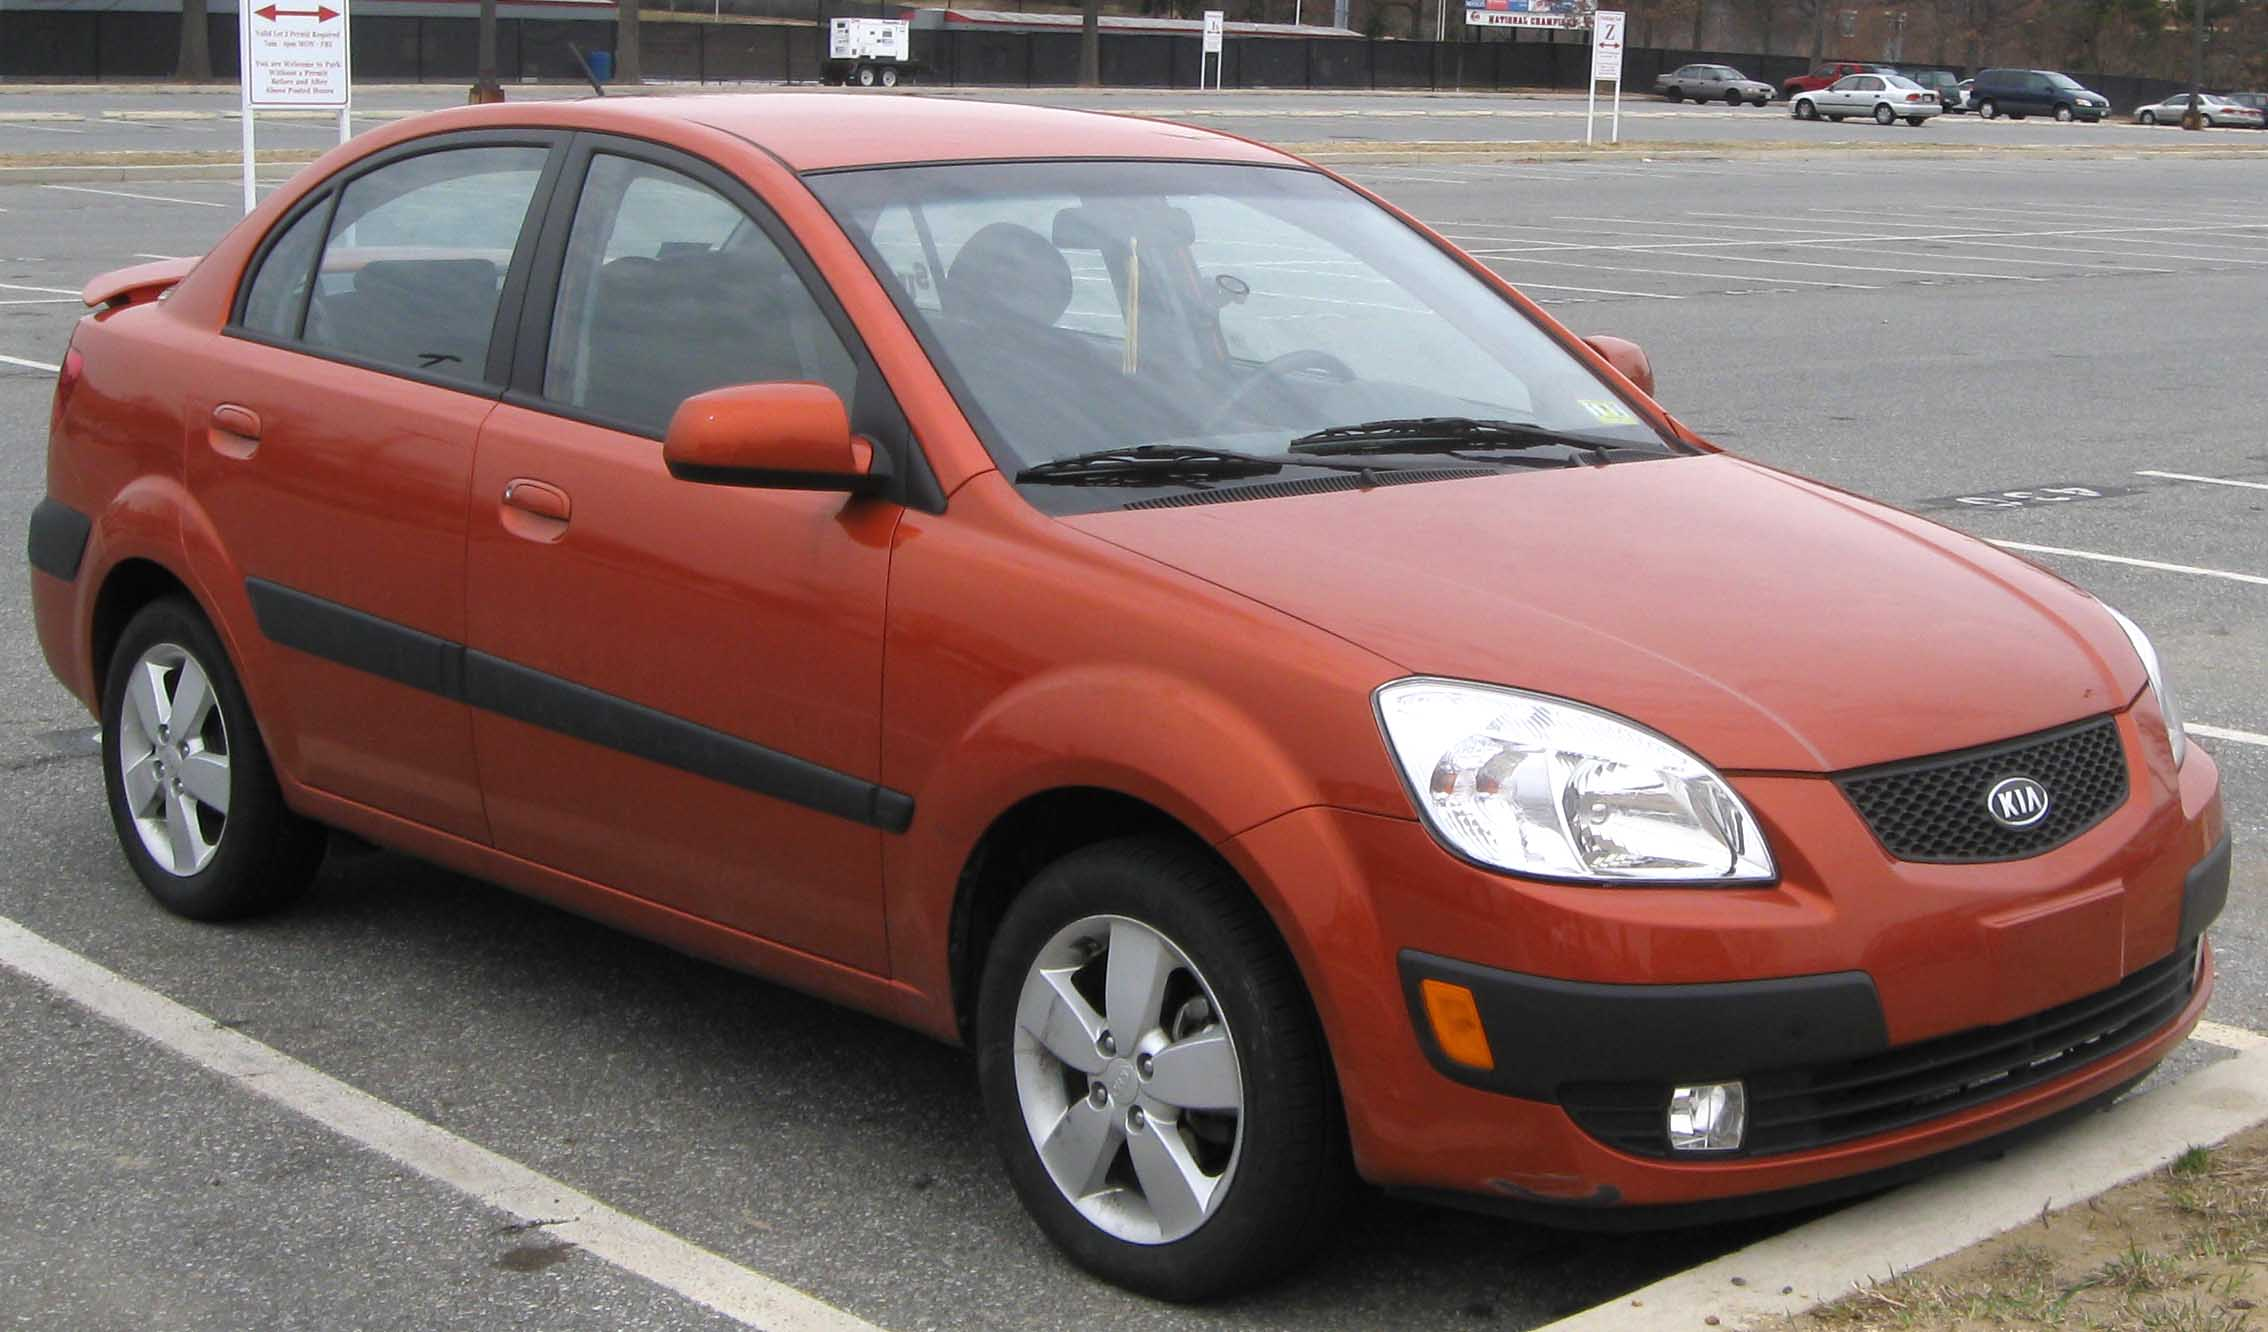 Download All Kia Rio 2009 Pictures (1.5 Mb)